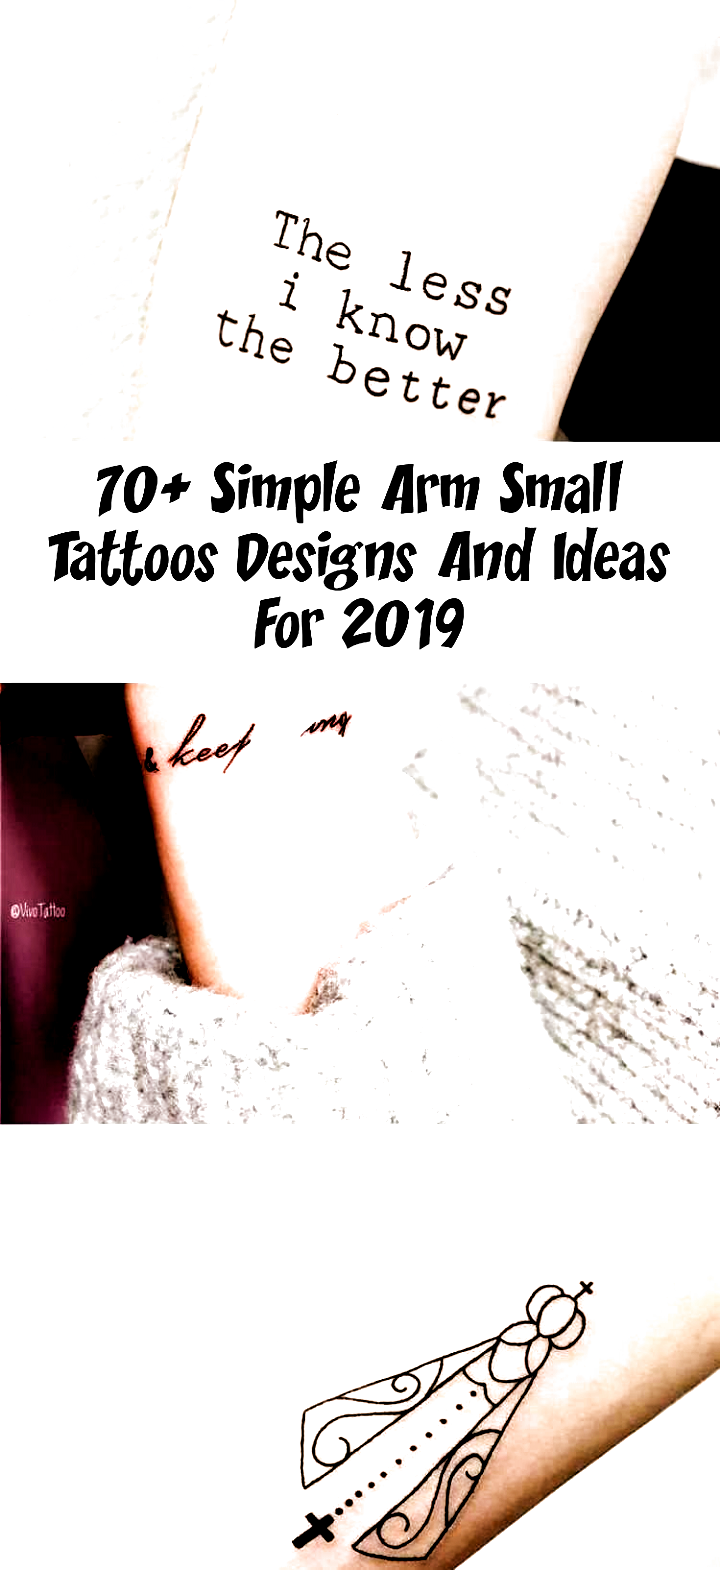 Photo of 70+ Simple Small Arm Tattoos designs and ideas for 2019 Arm Arm tattoos quote-qu…